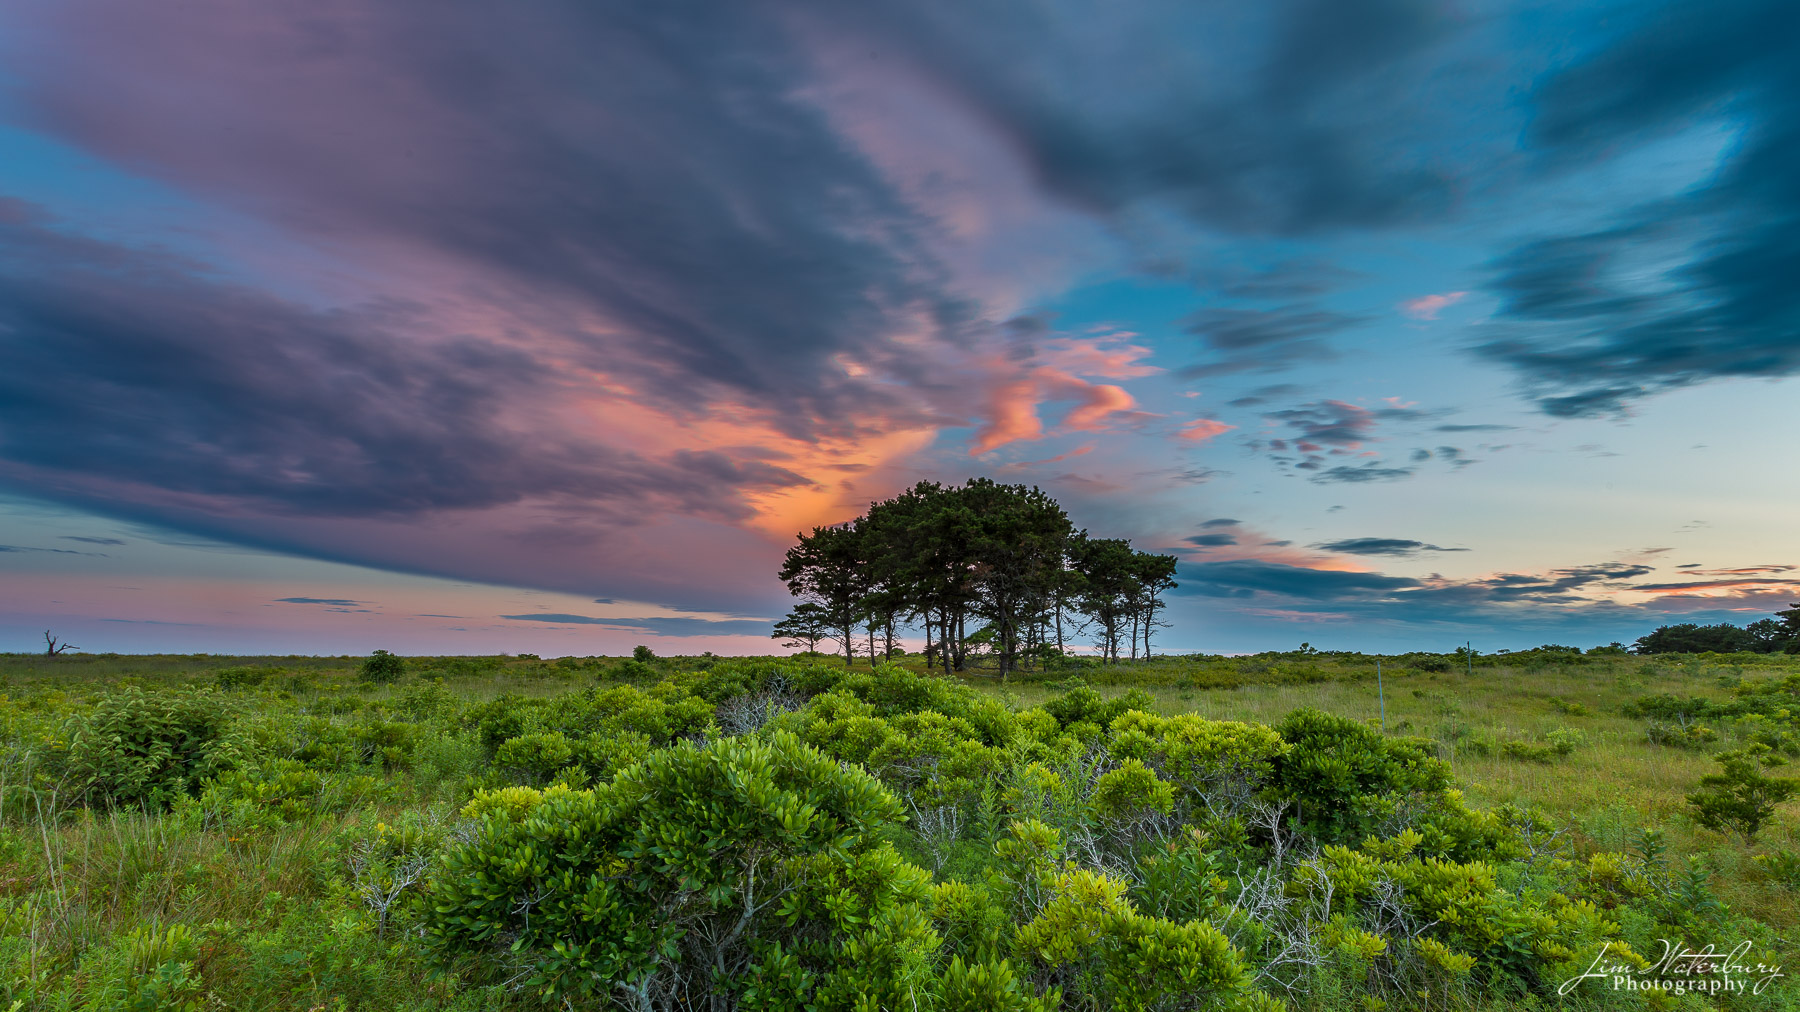 A group of trees is framed by dramatic and colorful skies at twilight, as seen from Barrett Farm Road, near Madaket, Nantucket...